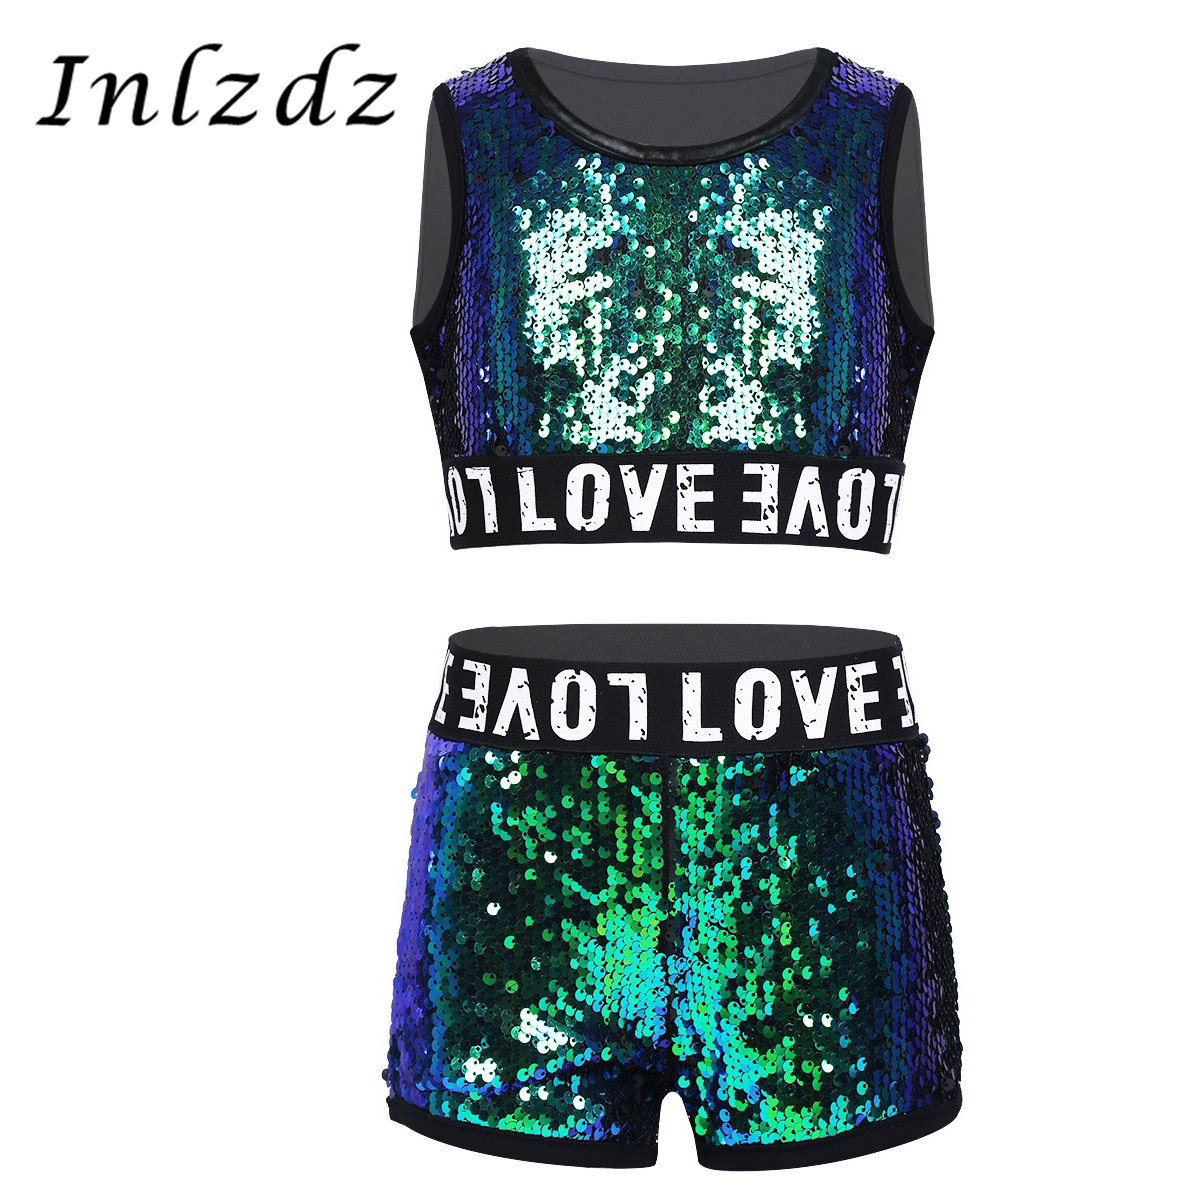 Kids Girls Hip-hop Jazz Gymnastics Performance Costumes Jazz Dancing Clothes Shiny Sequins Sleeveless Crop Top With Shorts Set